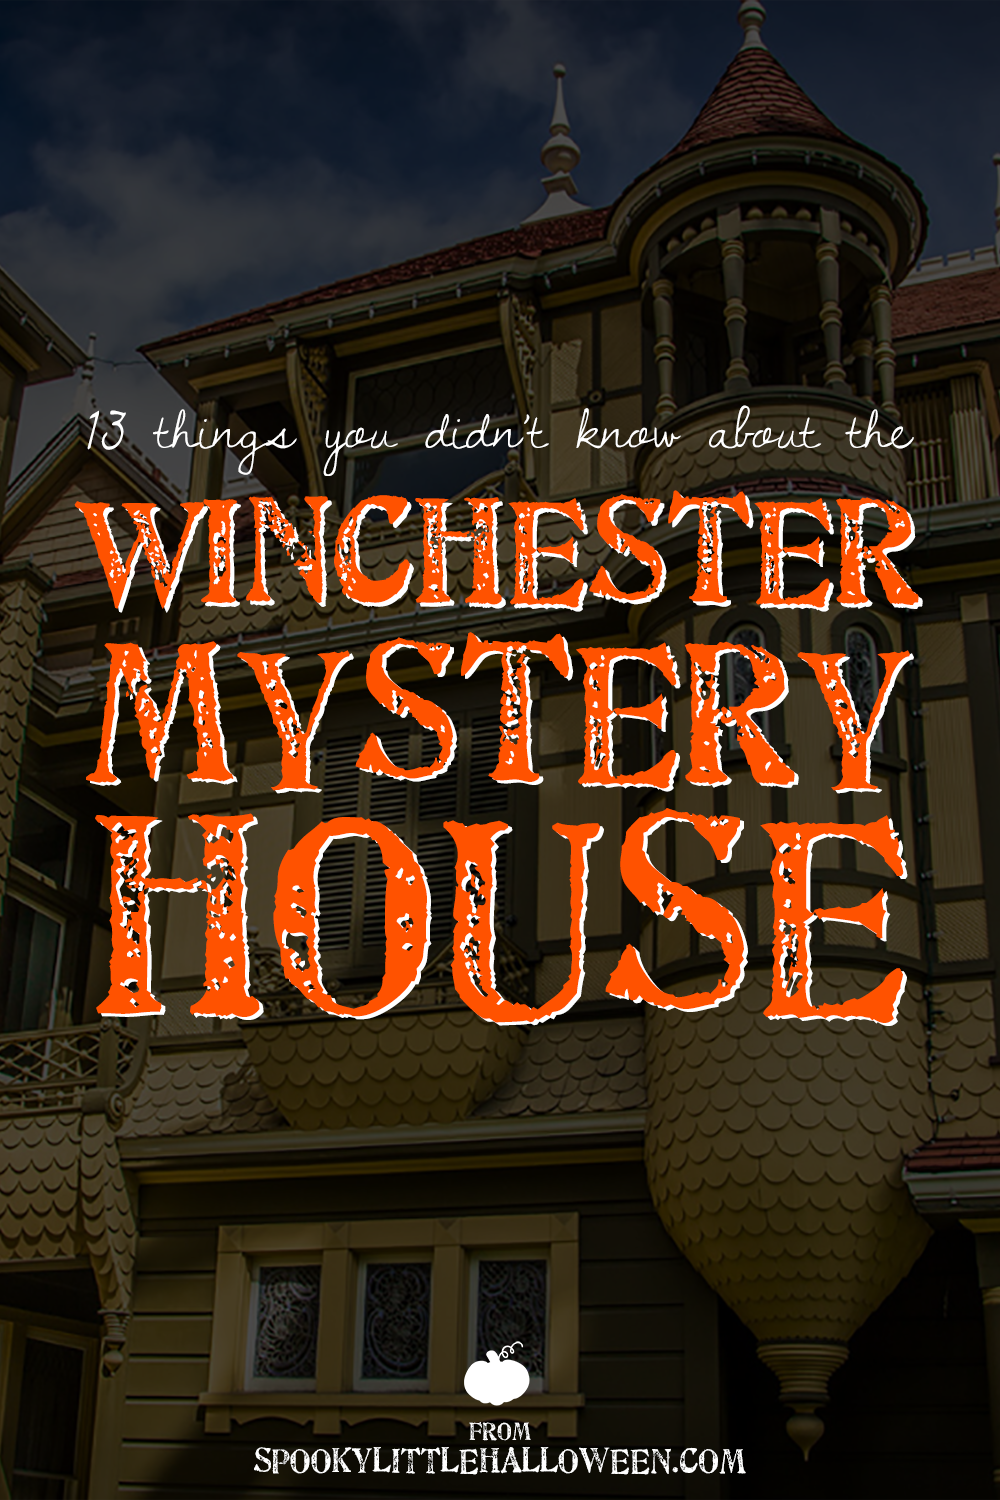 13 things you didn't know about the winchester mystery house